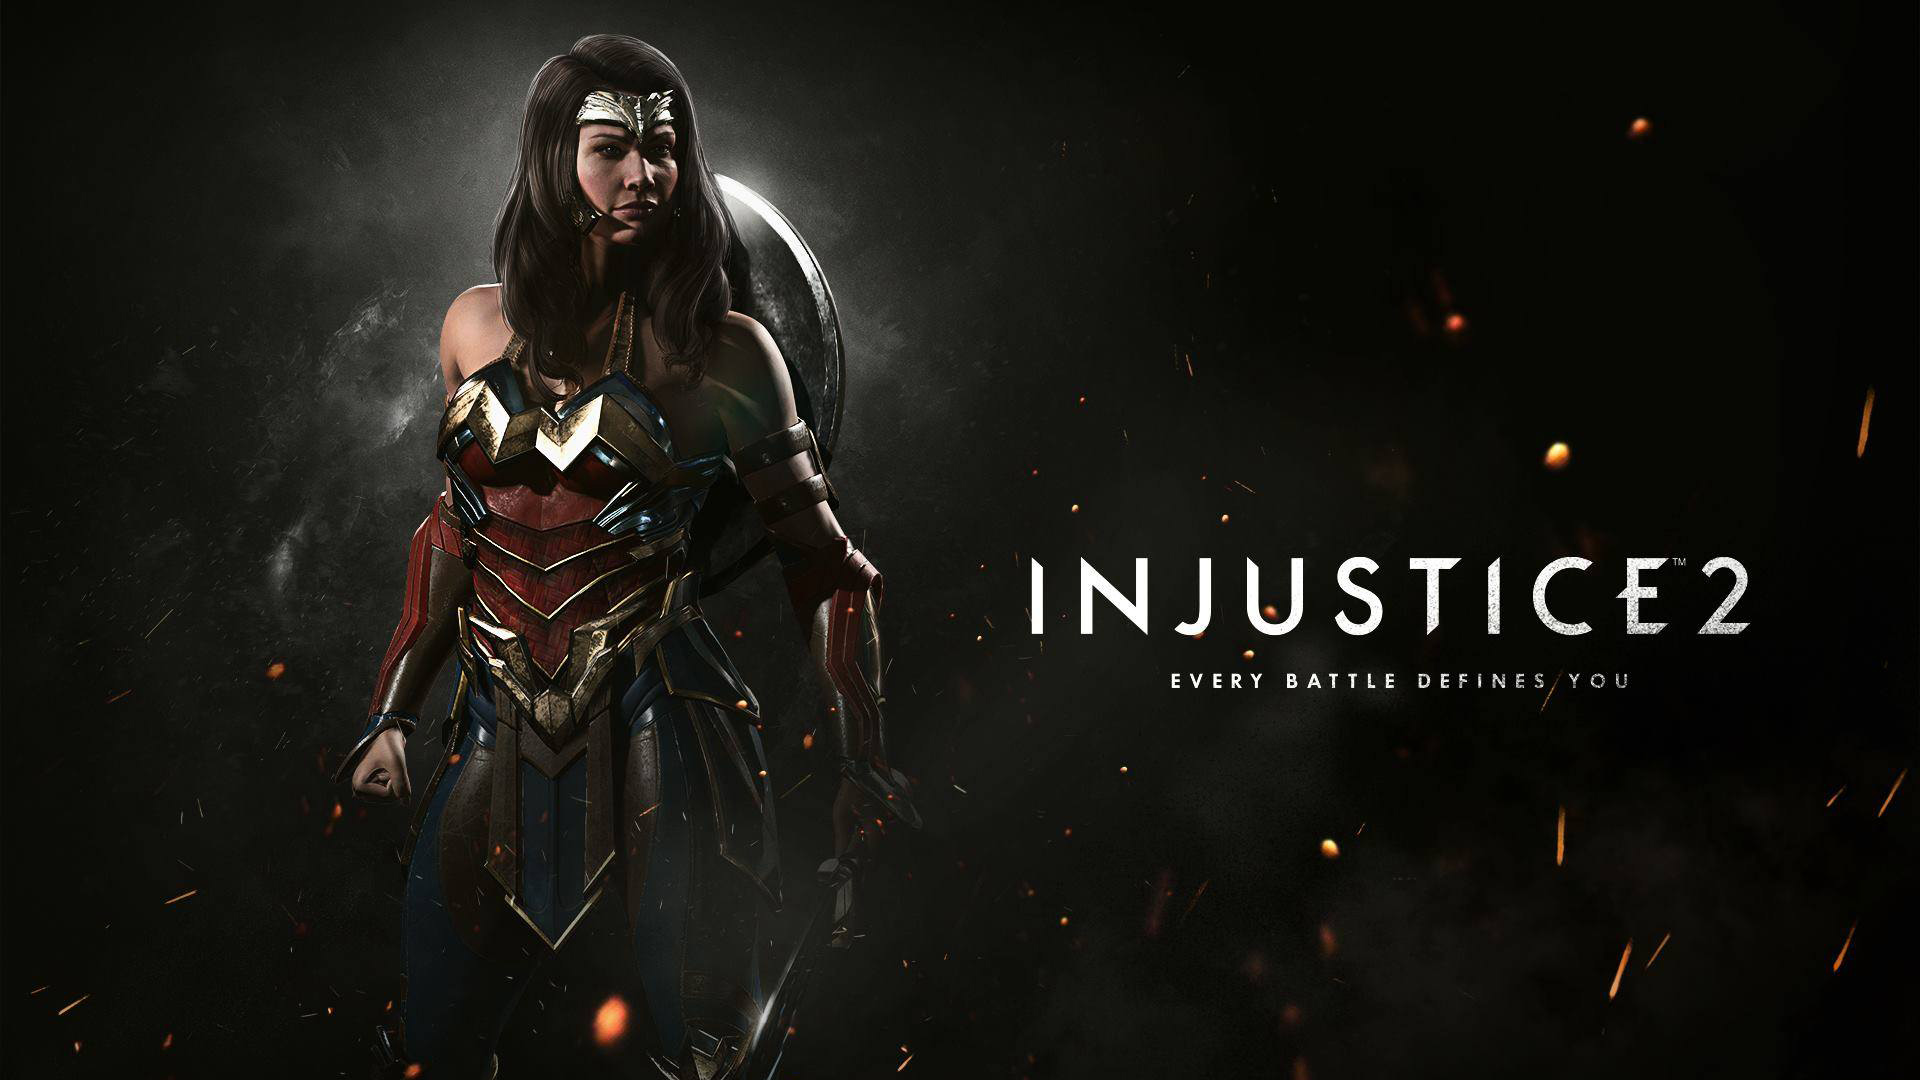 wonder woman in injustice 2 hd games 4k wallpapers images backgrounds photos and pictures wonder woman in injustice 2 hd games